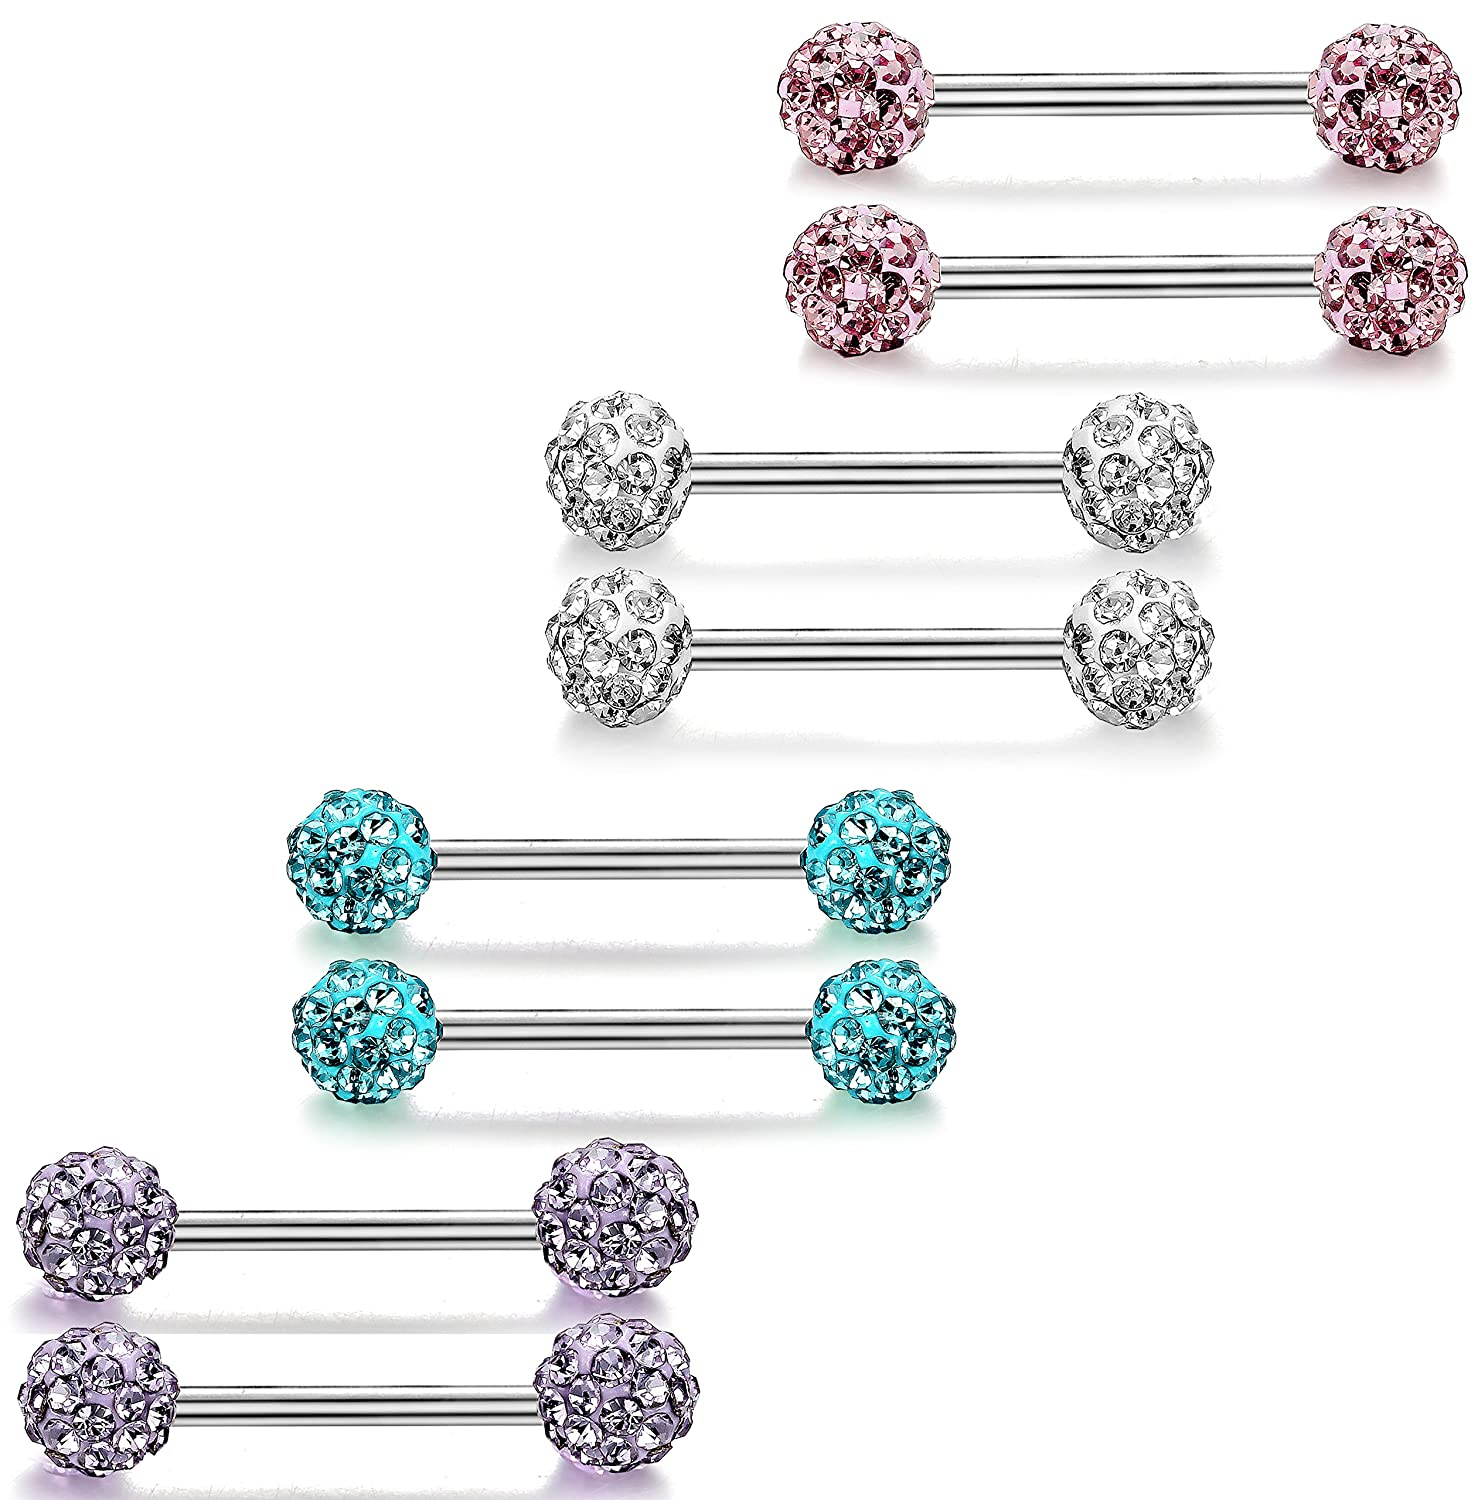 ORAZIO 6-8 Pcs 14G 316L Stainless Steel CZ Nipple Piercing Barbell Belly Button Ring for Women